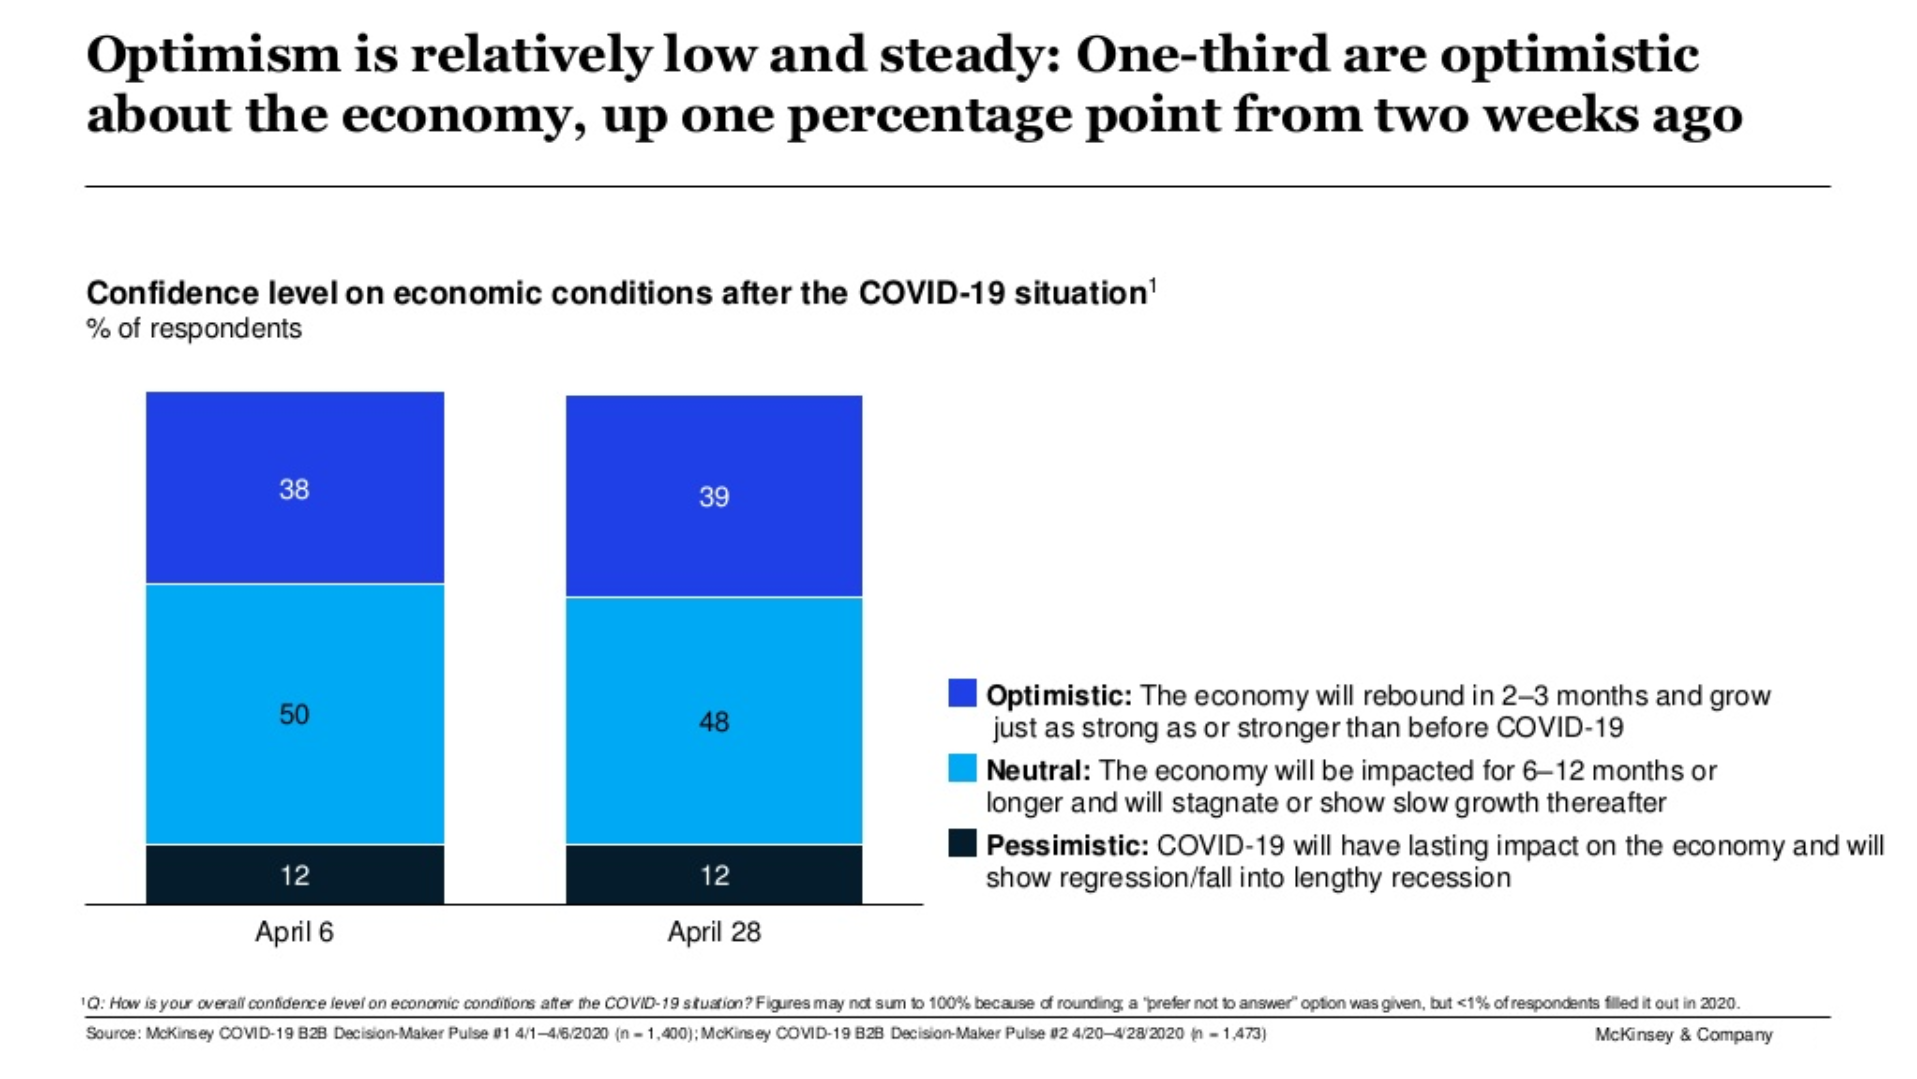 Confidence level on economic conditions after covid-19